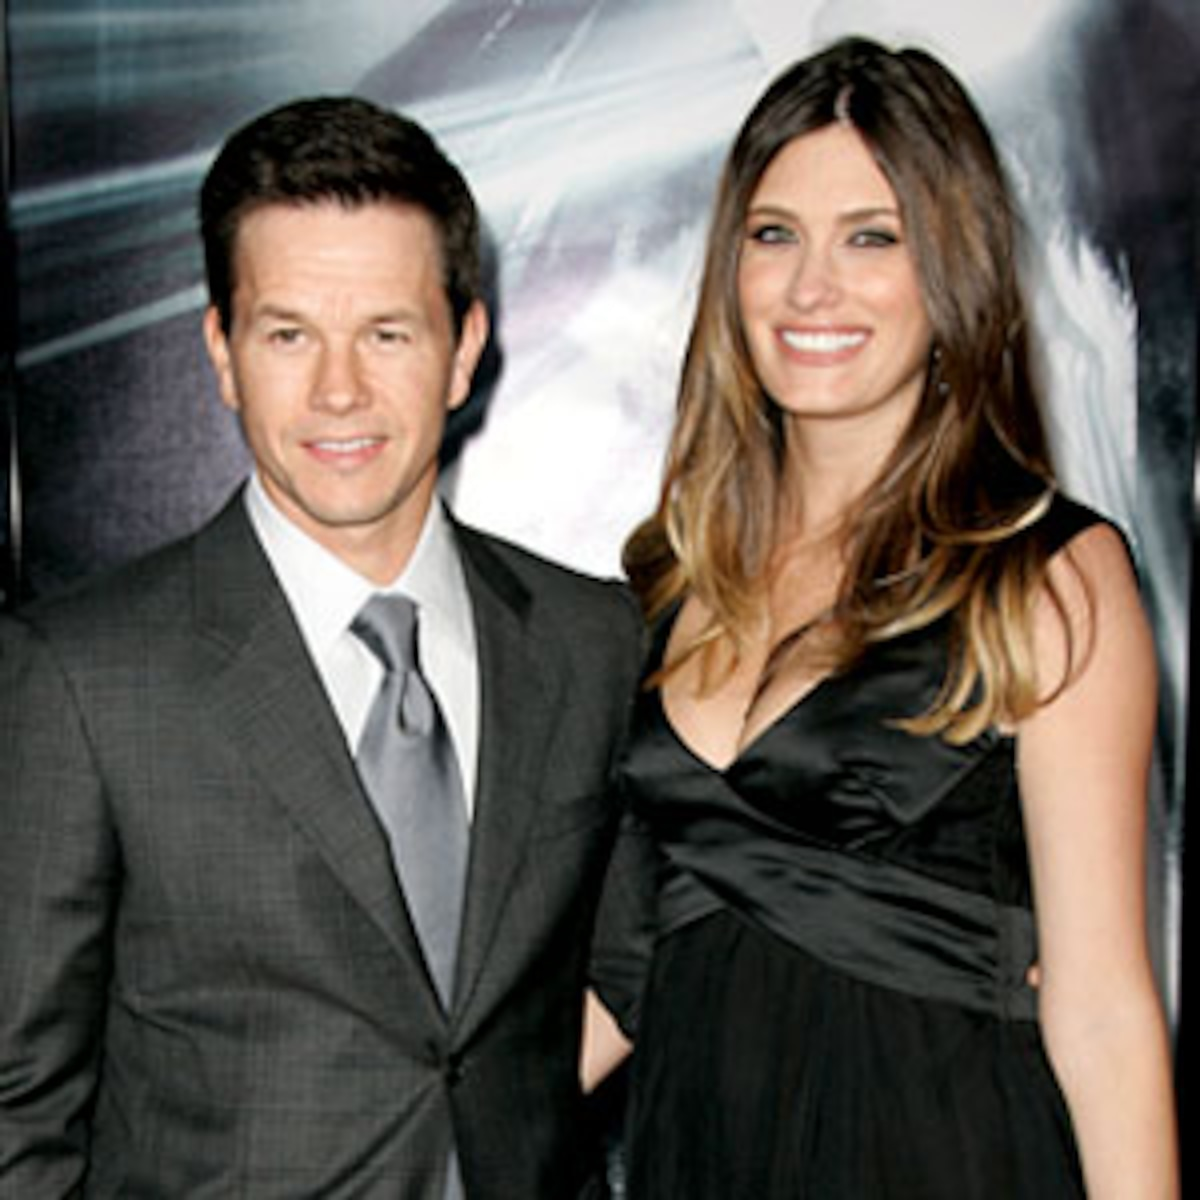 Mark Wahlberg Puts A Ring On Longtime Love E News